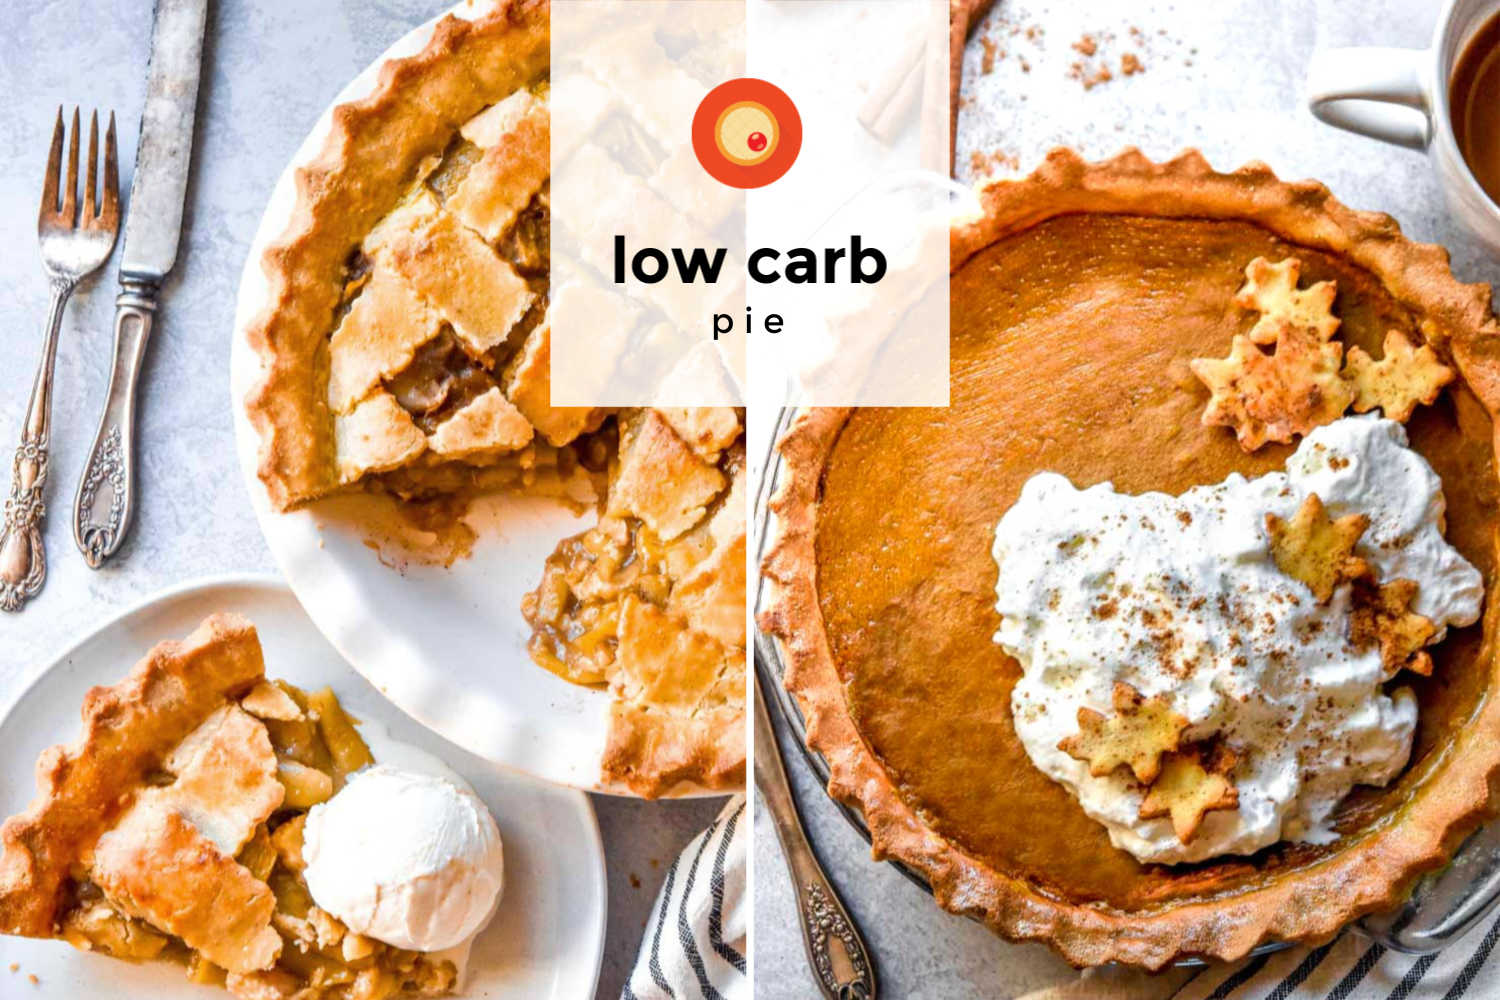 Low carb pie